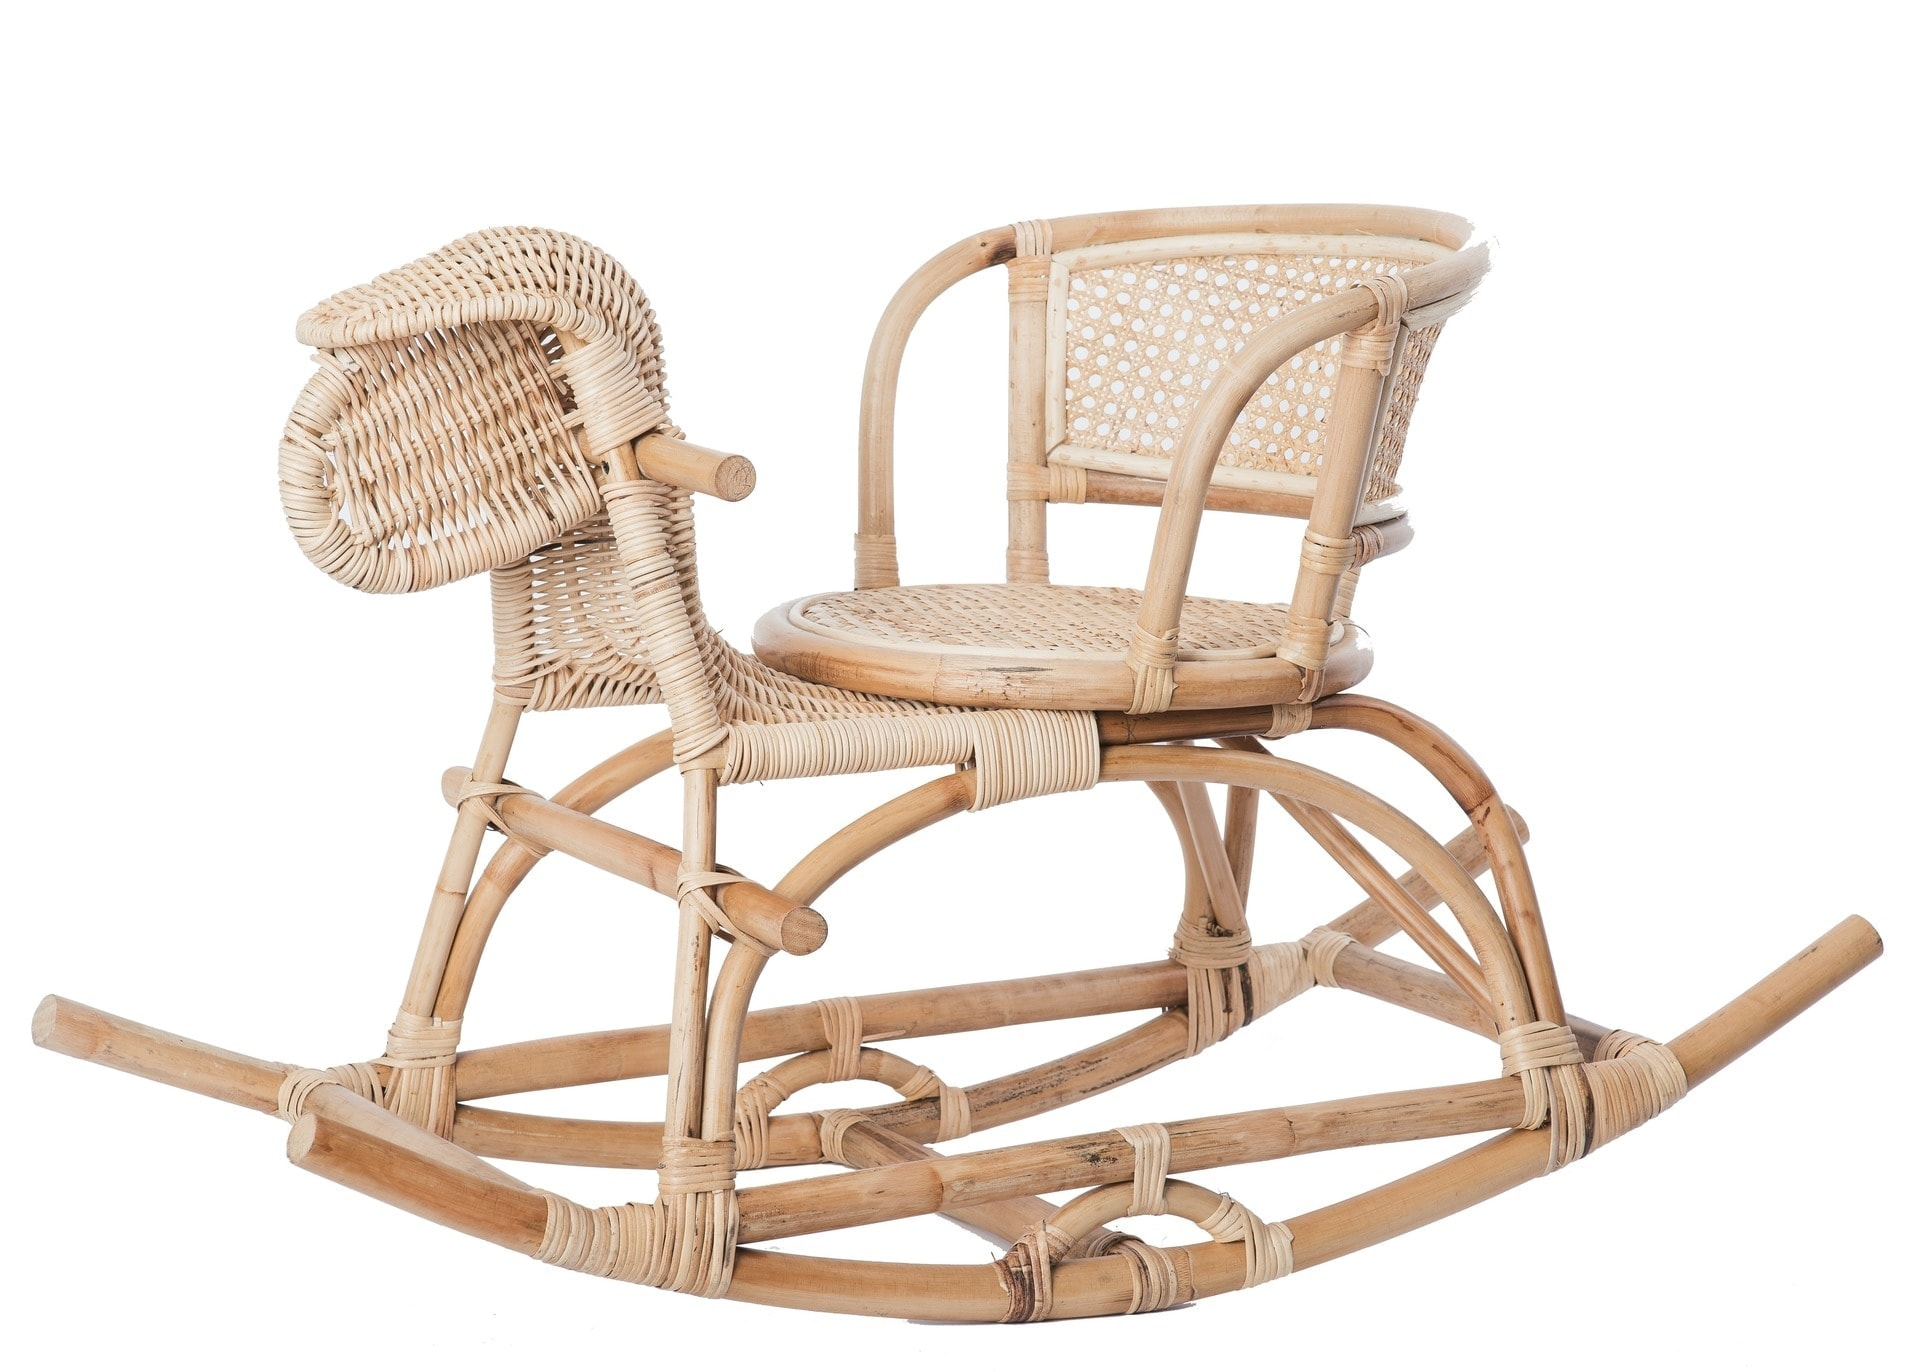 rattan rocking horse bohemian kids furniture raja homewares